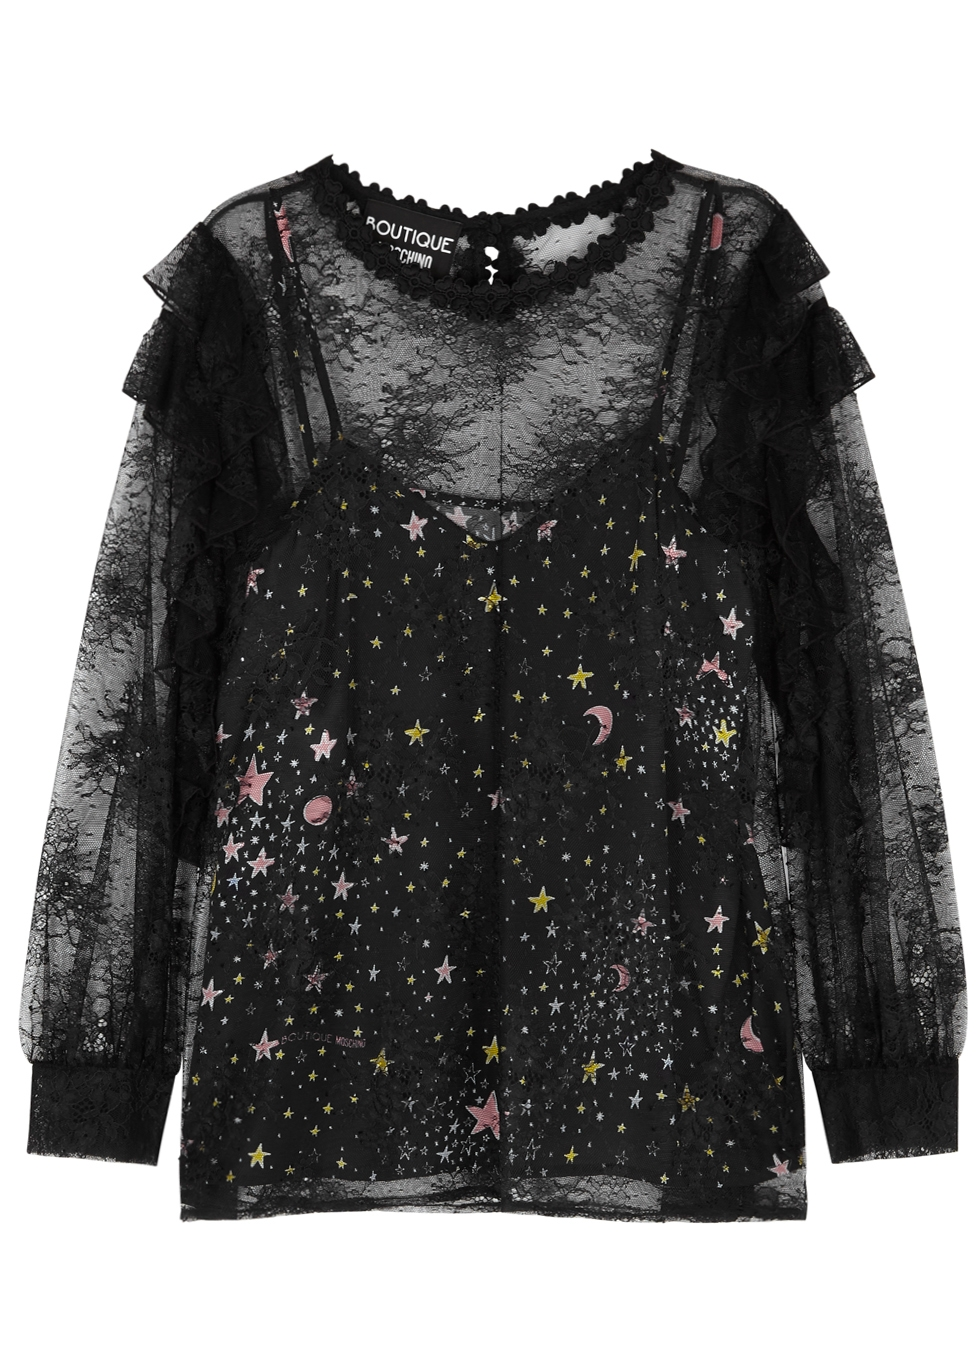 BOUTIQUE MOSCHINO BLACK SATIN AND LACE TOP